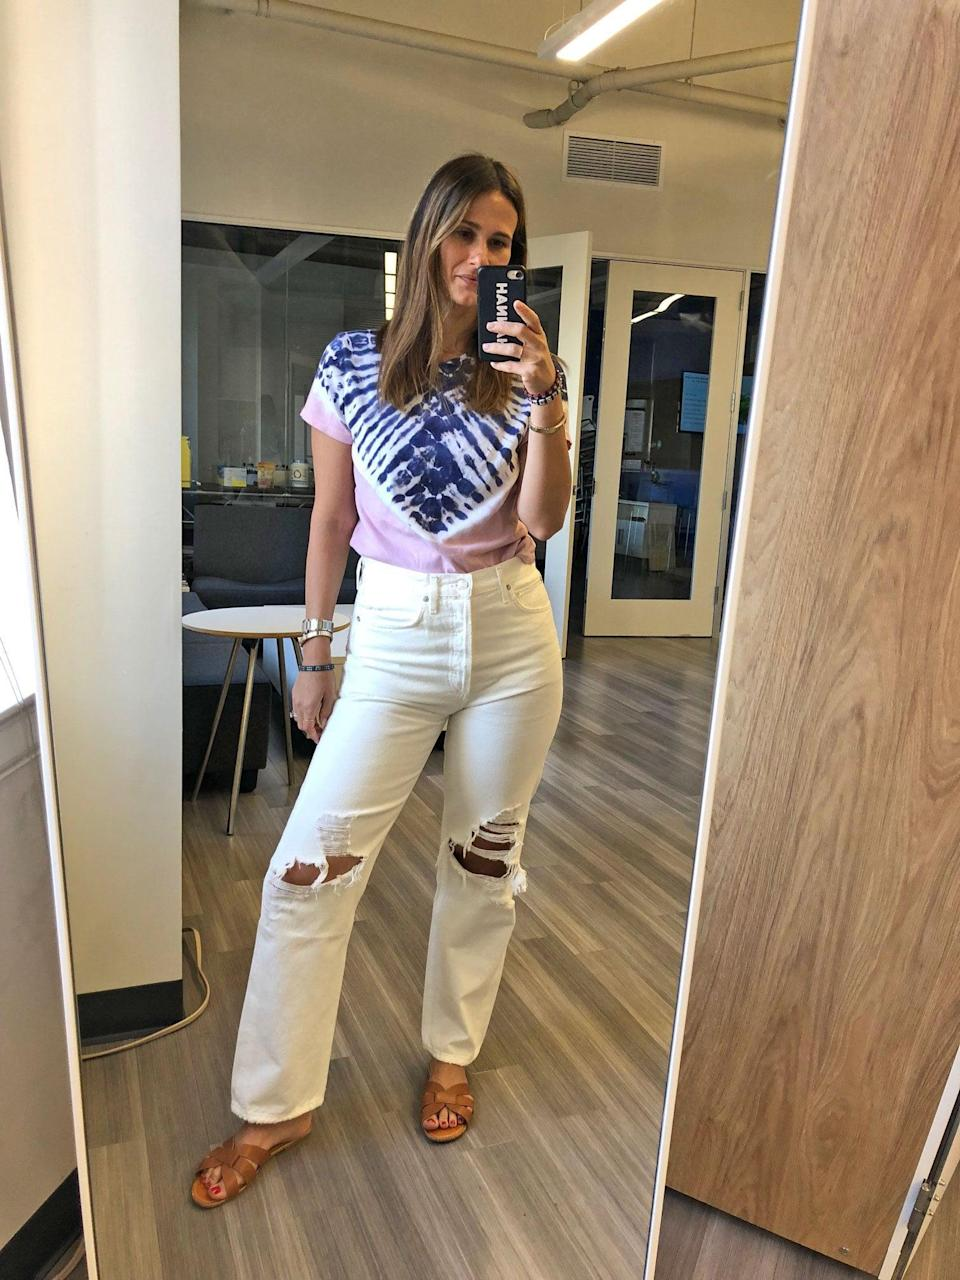 """<p>""""I had all but decided that the whole white-jeans thing just wasn't my thing, when I took a chance on <a href=""""https://www.popsugar.com/buy/Agolde%27s%20%2790s%20Fit%20Denim-463067?p_name=Agolde%27s%20%2790s%20Fit%20Denim&retailer=shopbop.com&evar1=fab%3Aus&evar9=46316761&evar98=https%3A%2F%2Fwww.popsugar.com%2Ffashion%2Fphoto-gallery%2F46316761%2Fimage%2F46316772%2FHannah-Pick-Agolde-90s-Fit-Jeans&list1=shopping%2Cdenim%2Ceditors%20pick&prop13=api&pdata=1"""" rel=""""nofollow noopener"""" target=""""_blank"""" data-ylk=""""slk:Agolde's '90s Fit Denim"""" class=""""link rapid-noclick-resp"""">Agolde's '90s Fit Denim</a>. It makes sense - I already <a href=""""https://www.popsugar.com/fashion/photo-gallery/45827754/image/45851310/Agolde-Riley-High-Rise-Straight-Crop-Jeans-Veto"""" rel=""""nofollow noopener"""" target=""""_blank"""" data-ylk=""""slk:love the fit of Agolde jeans"""" class=""""link rapid-noclick-resp"""">love the fit of Agolde jeans</a> - but it's not just the higher rise and relaxed fit through the thighs that make these work - they are also the right weight (read: not see-through or clingy) and have the perfect distressing that I suspect only gets better with wear."""" - Hannah McKinley, content director, Fashion and Shop</p>"""